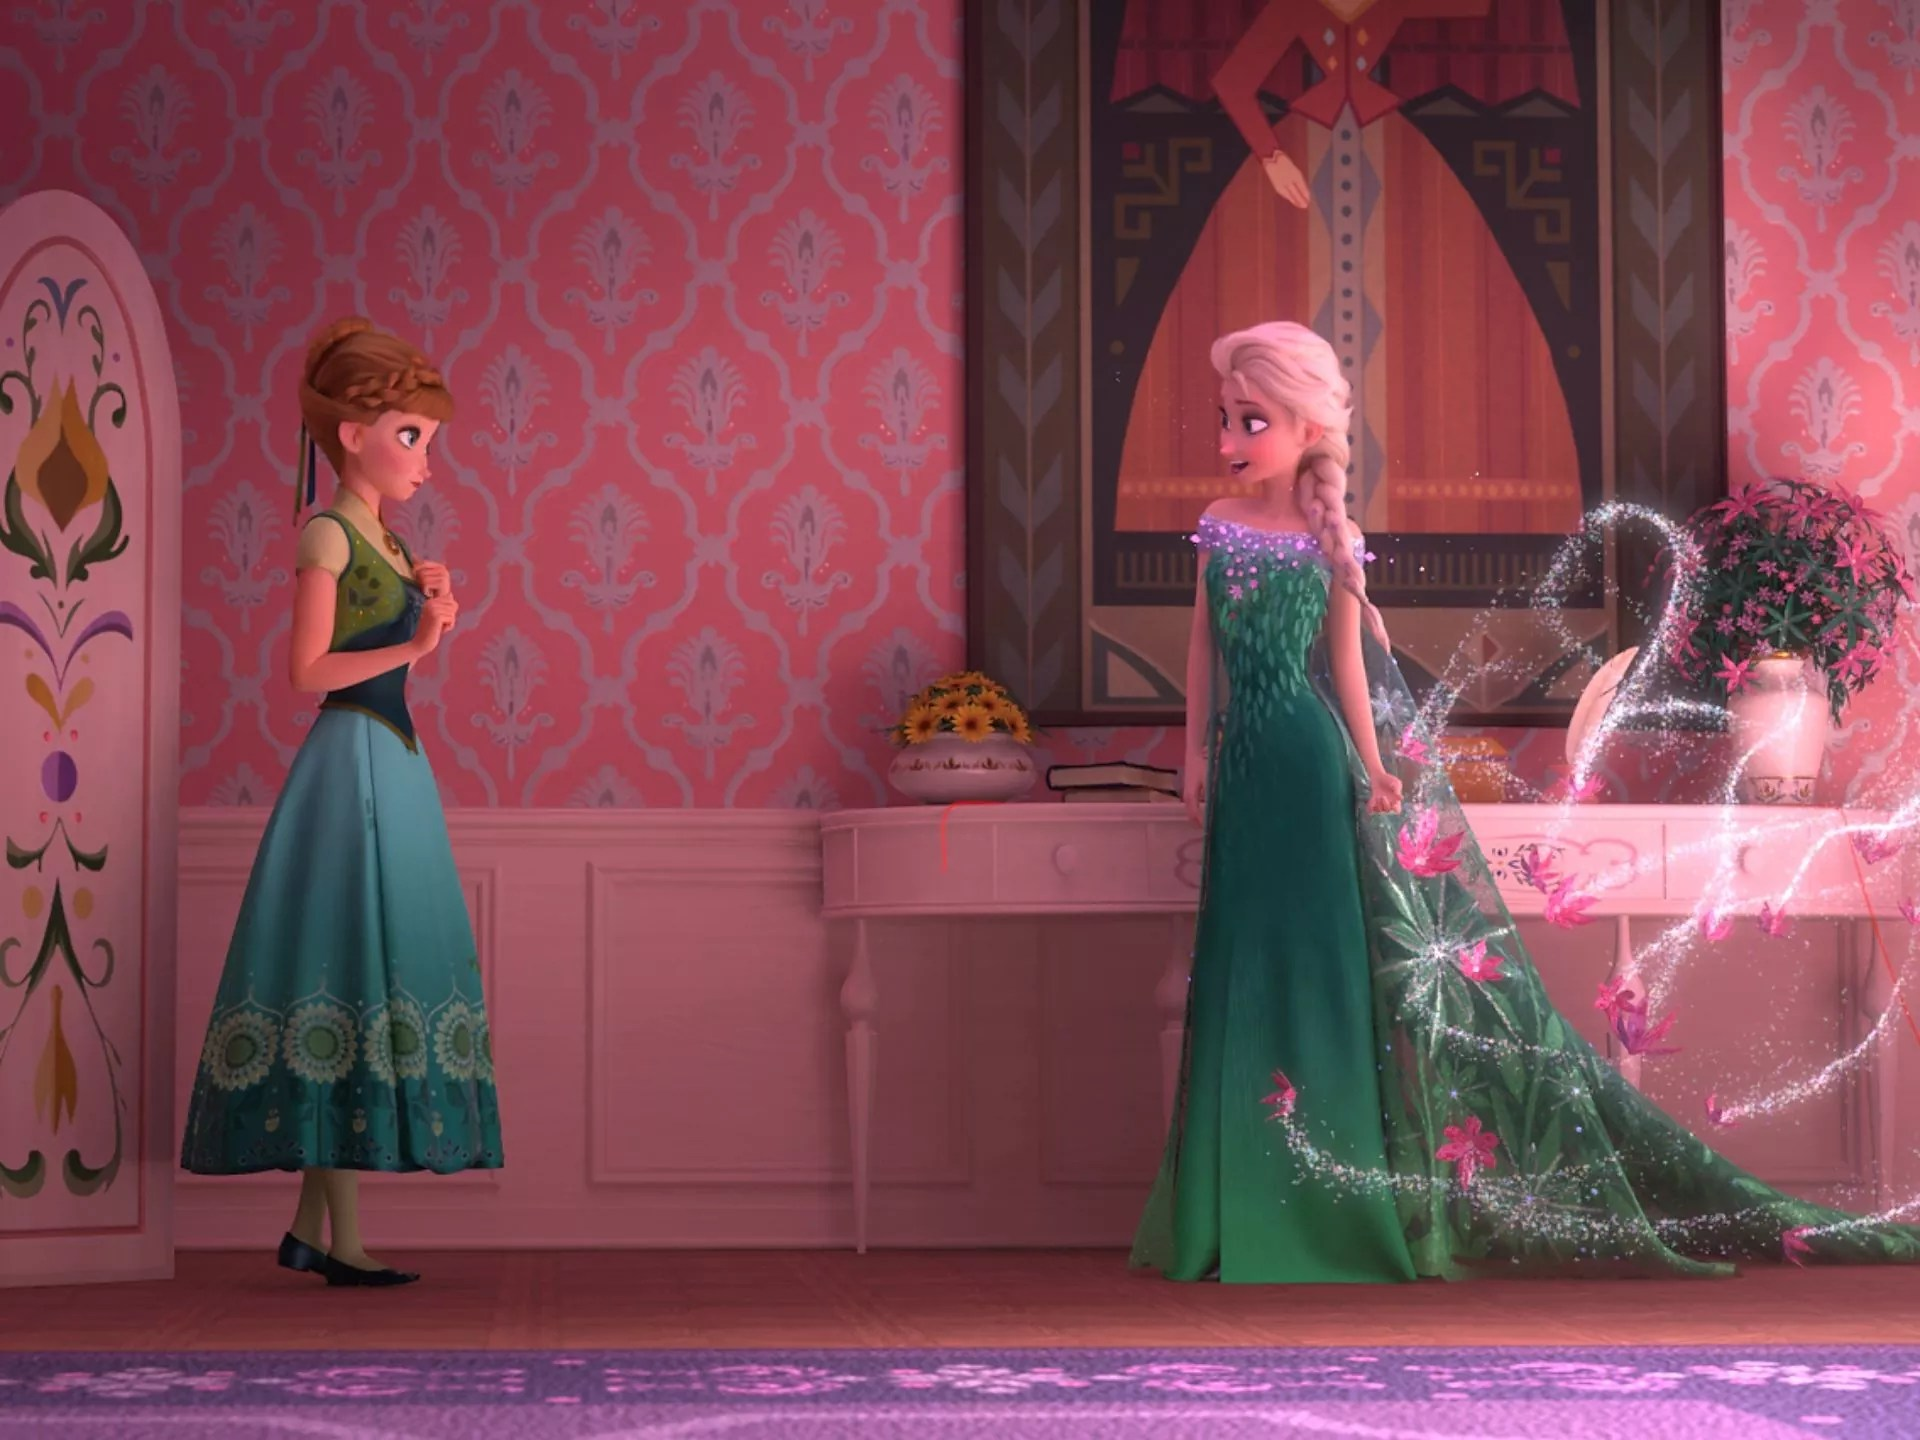 https://i1.wp.com/www.rotoscopers.com/wp-content/uploads/2015/02/Frozen-Fever-Elsa-Anna.jpg